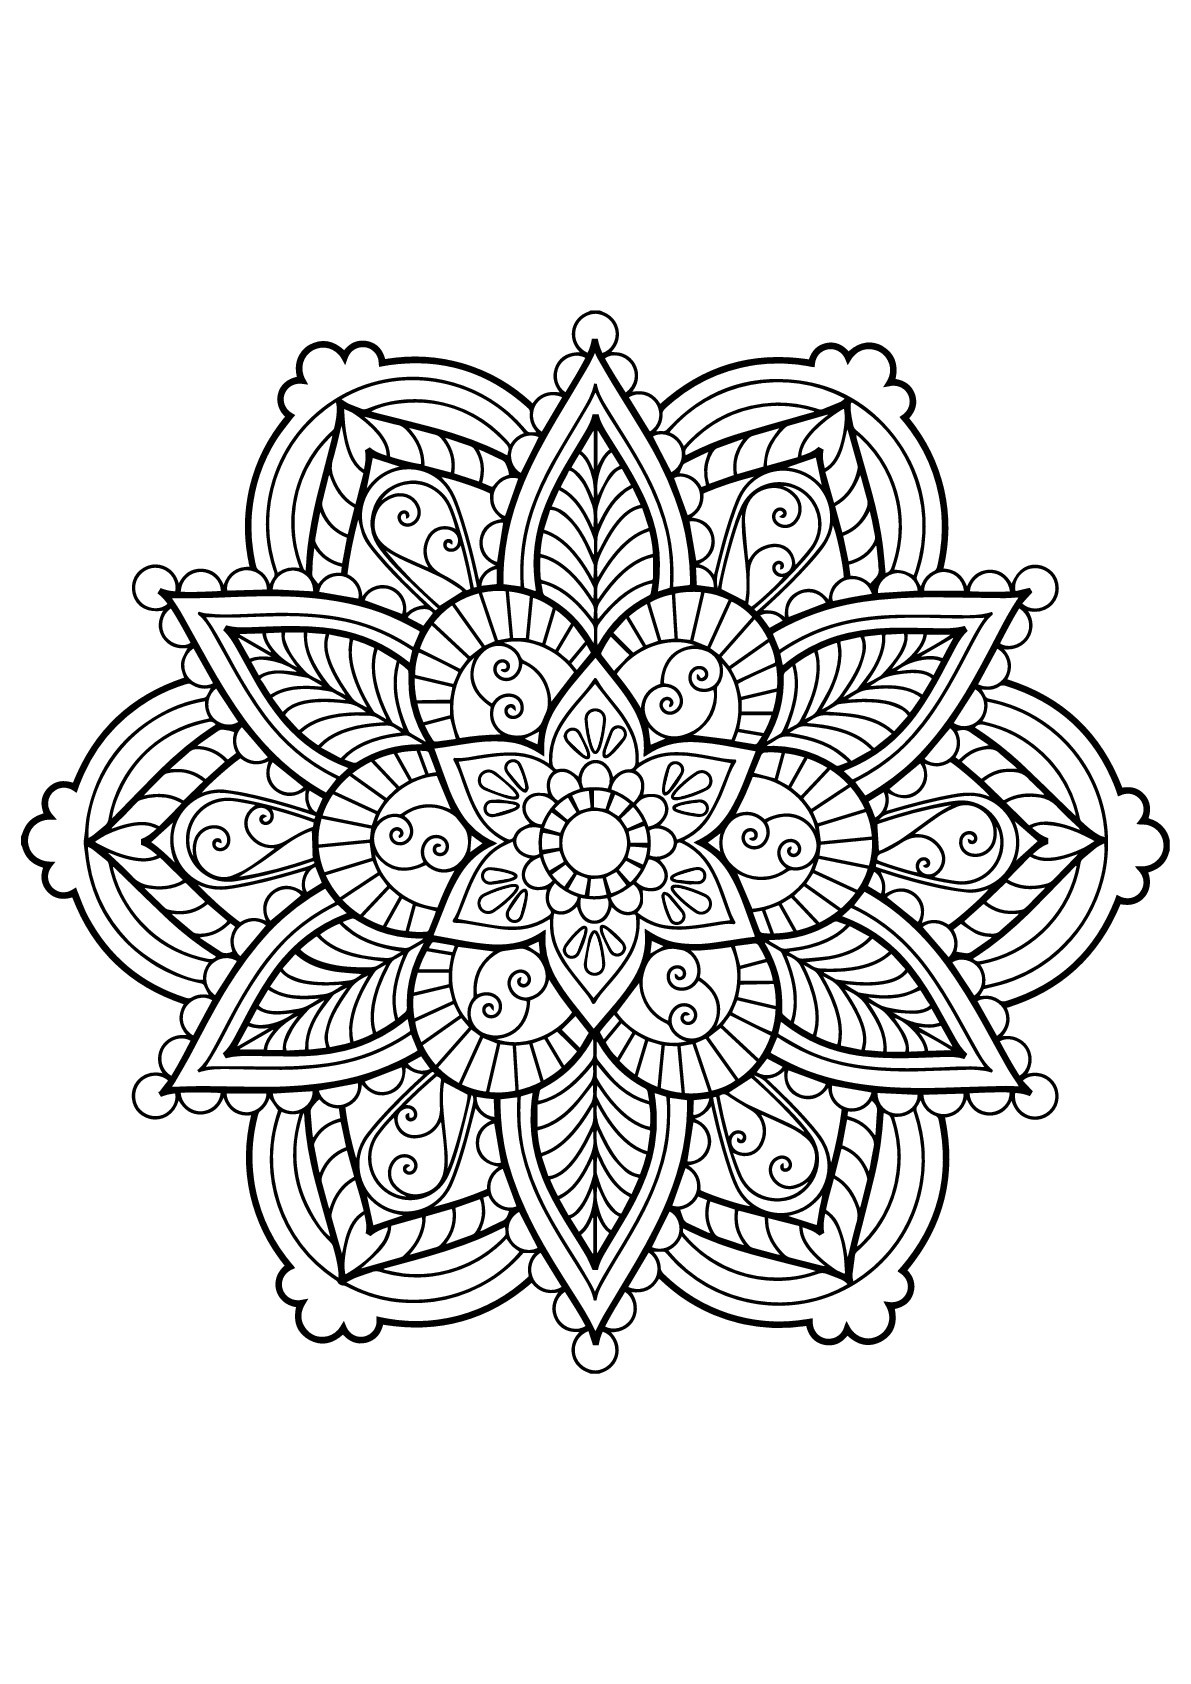 Mandala from free coloring books for adults 28 - M&alas ...   coloring books for adults mandala